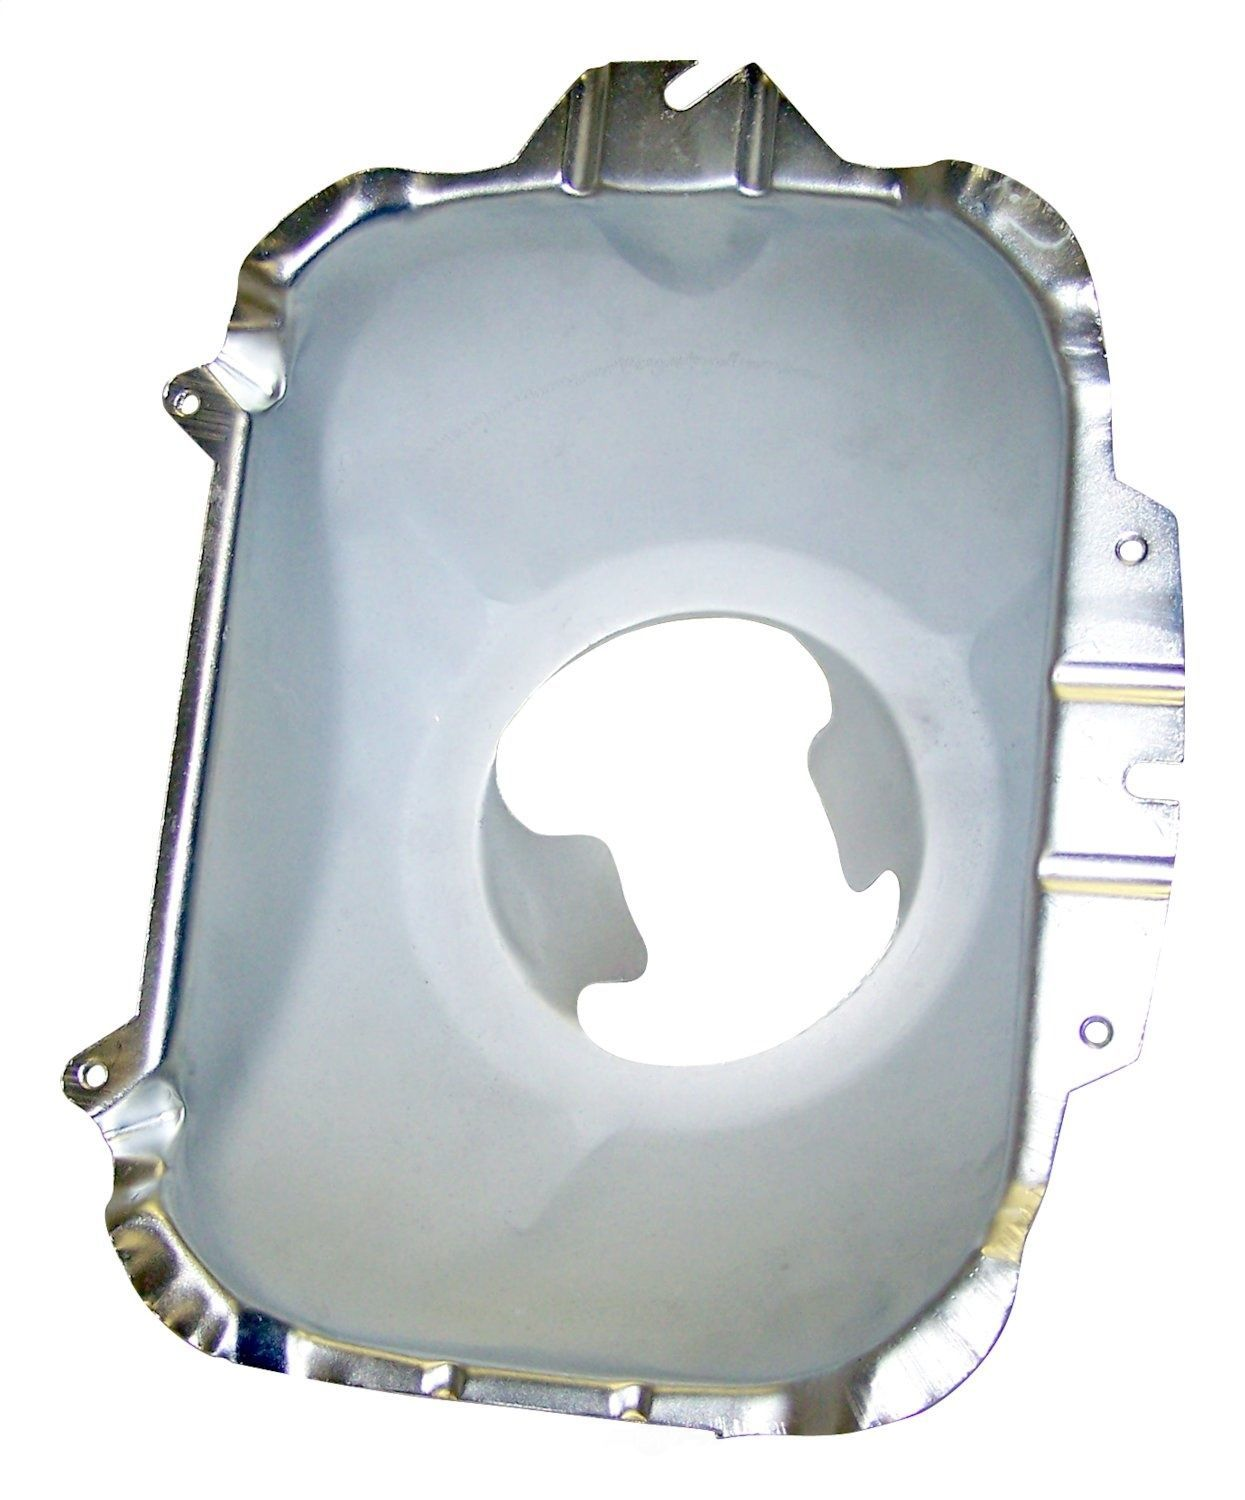 CROWN AUTOMOTIVE SALES CO. - Headlamp Seat - CAJ 56001278